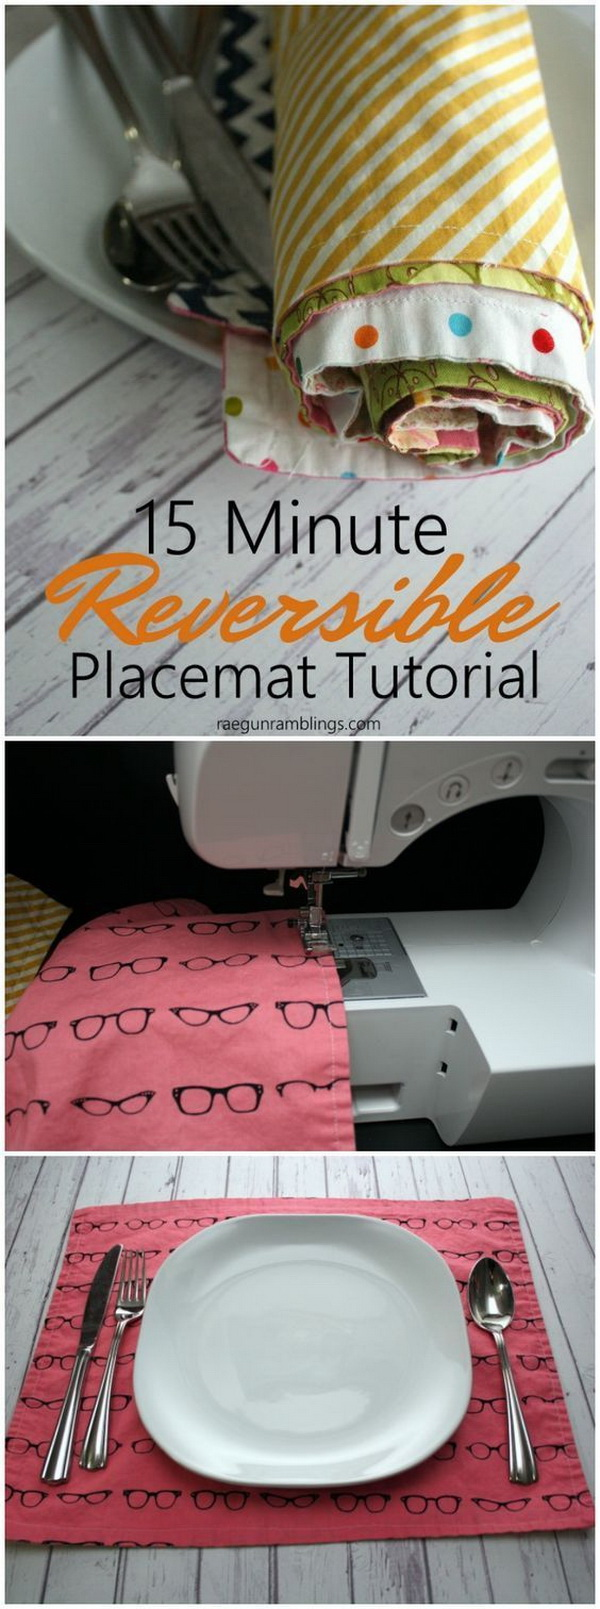 15 Minute Reversible Placemats. SO easy that kids could make them! Add a kind of homemade touch to your table!